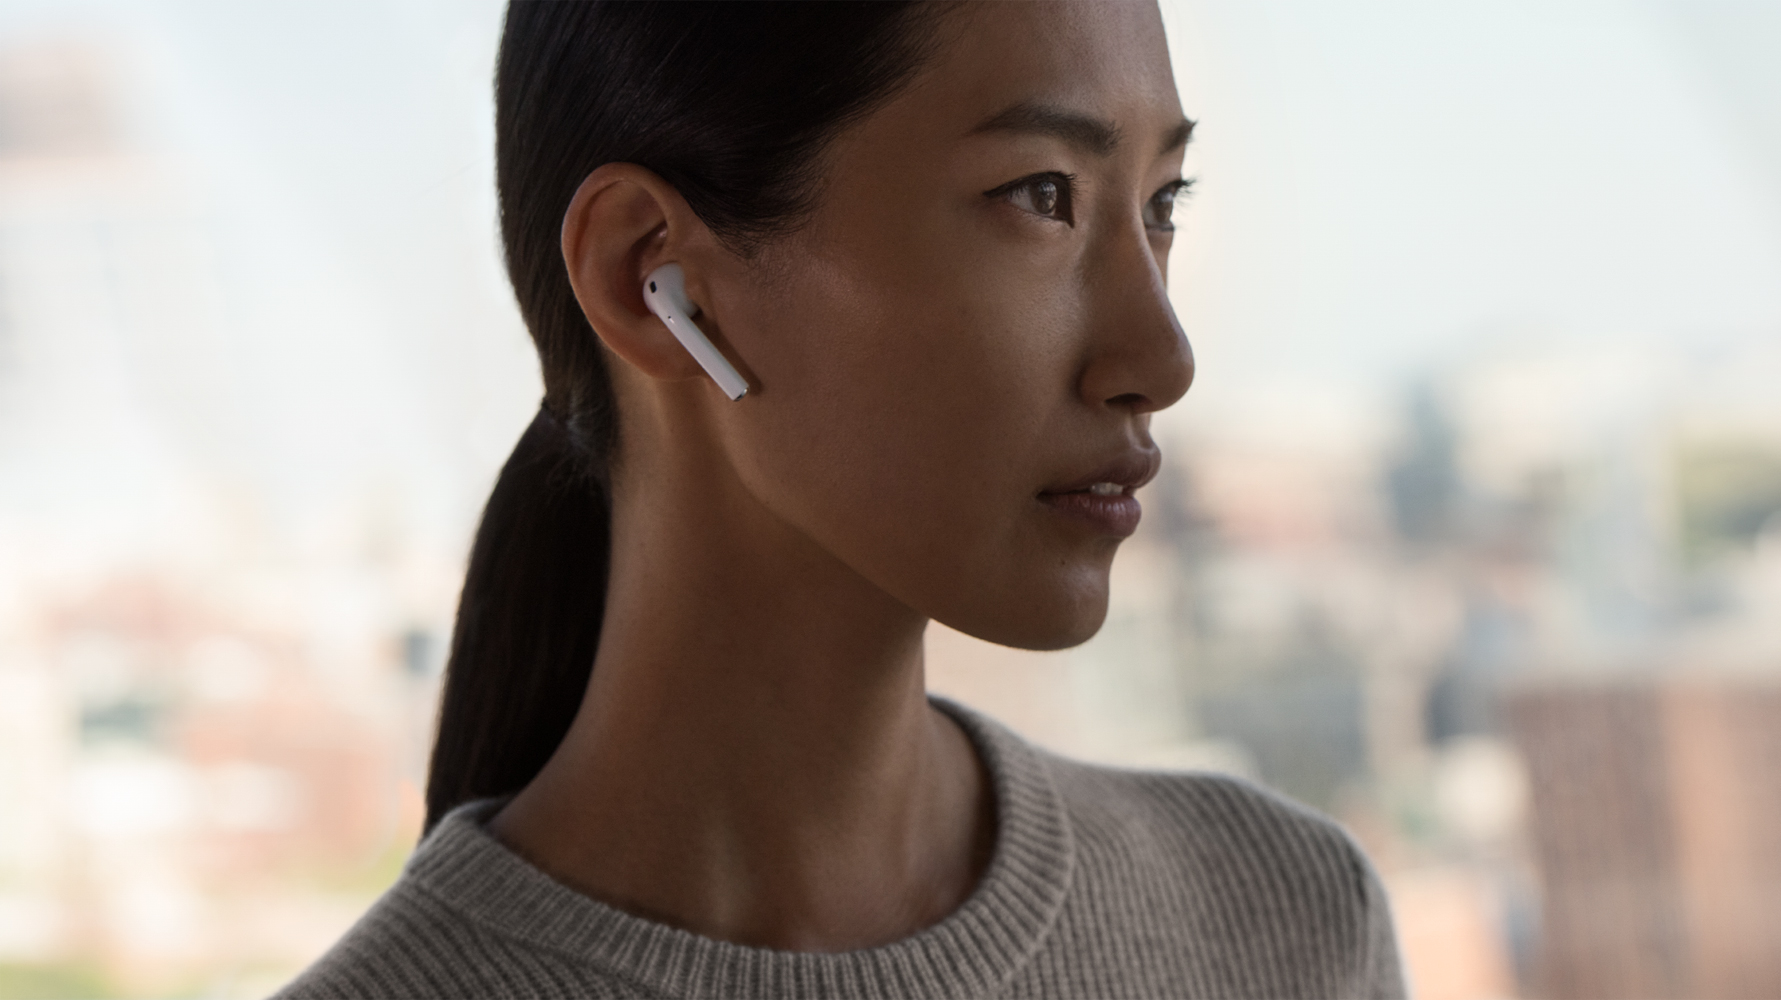 Apple AirPods should come in sets of three